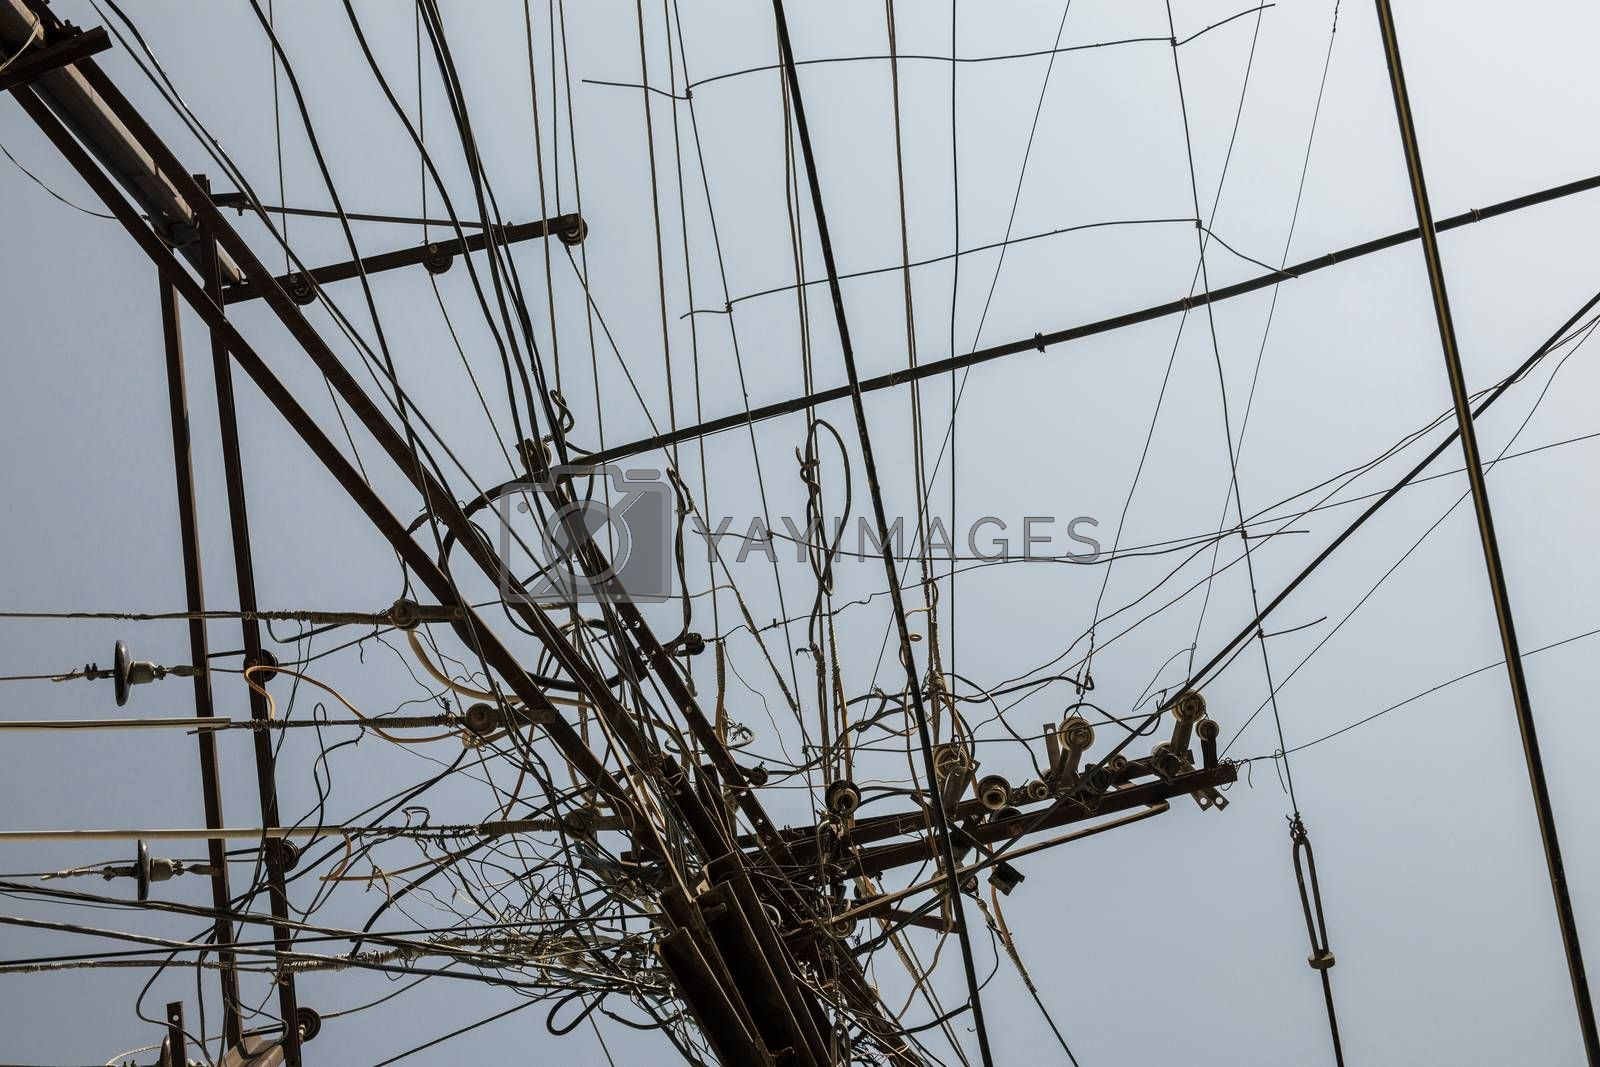 Electricity wire tangle post due to poor planning on installing the cable system